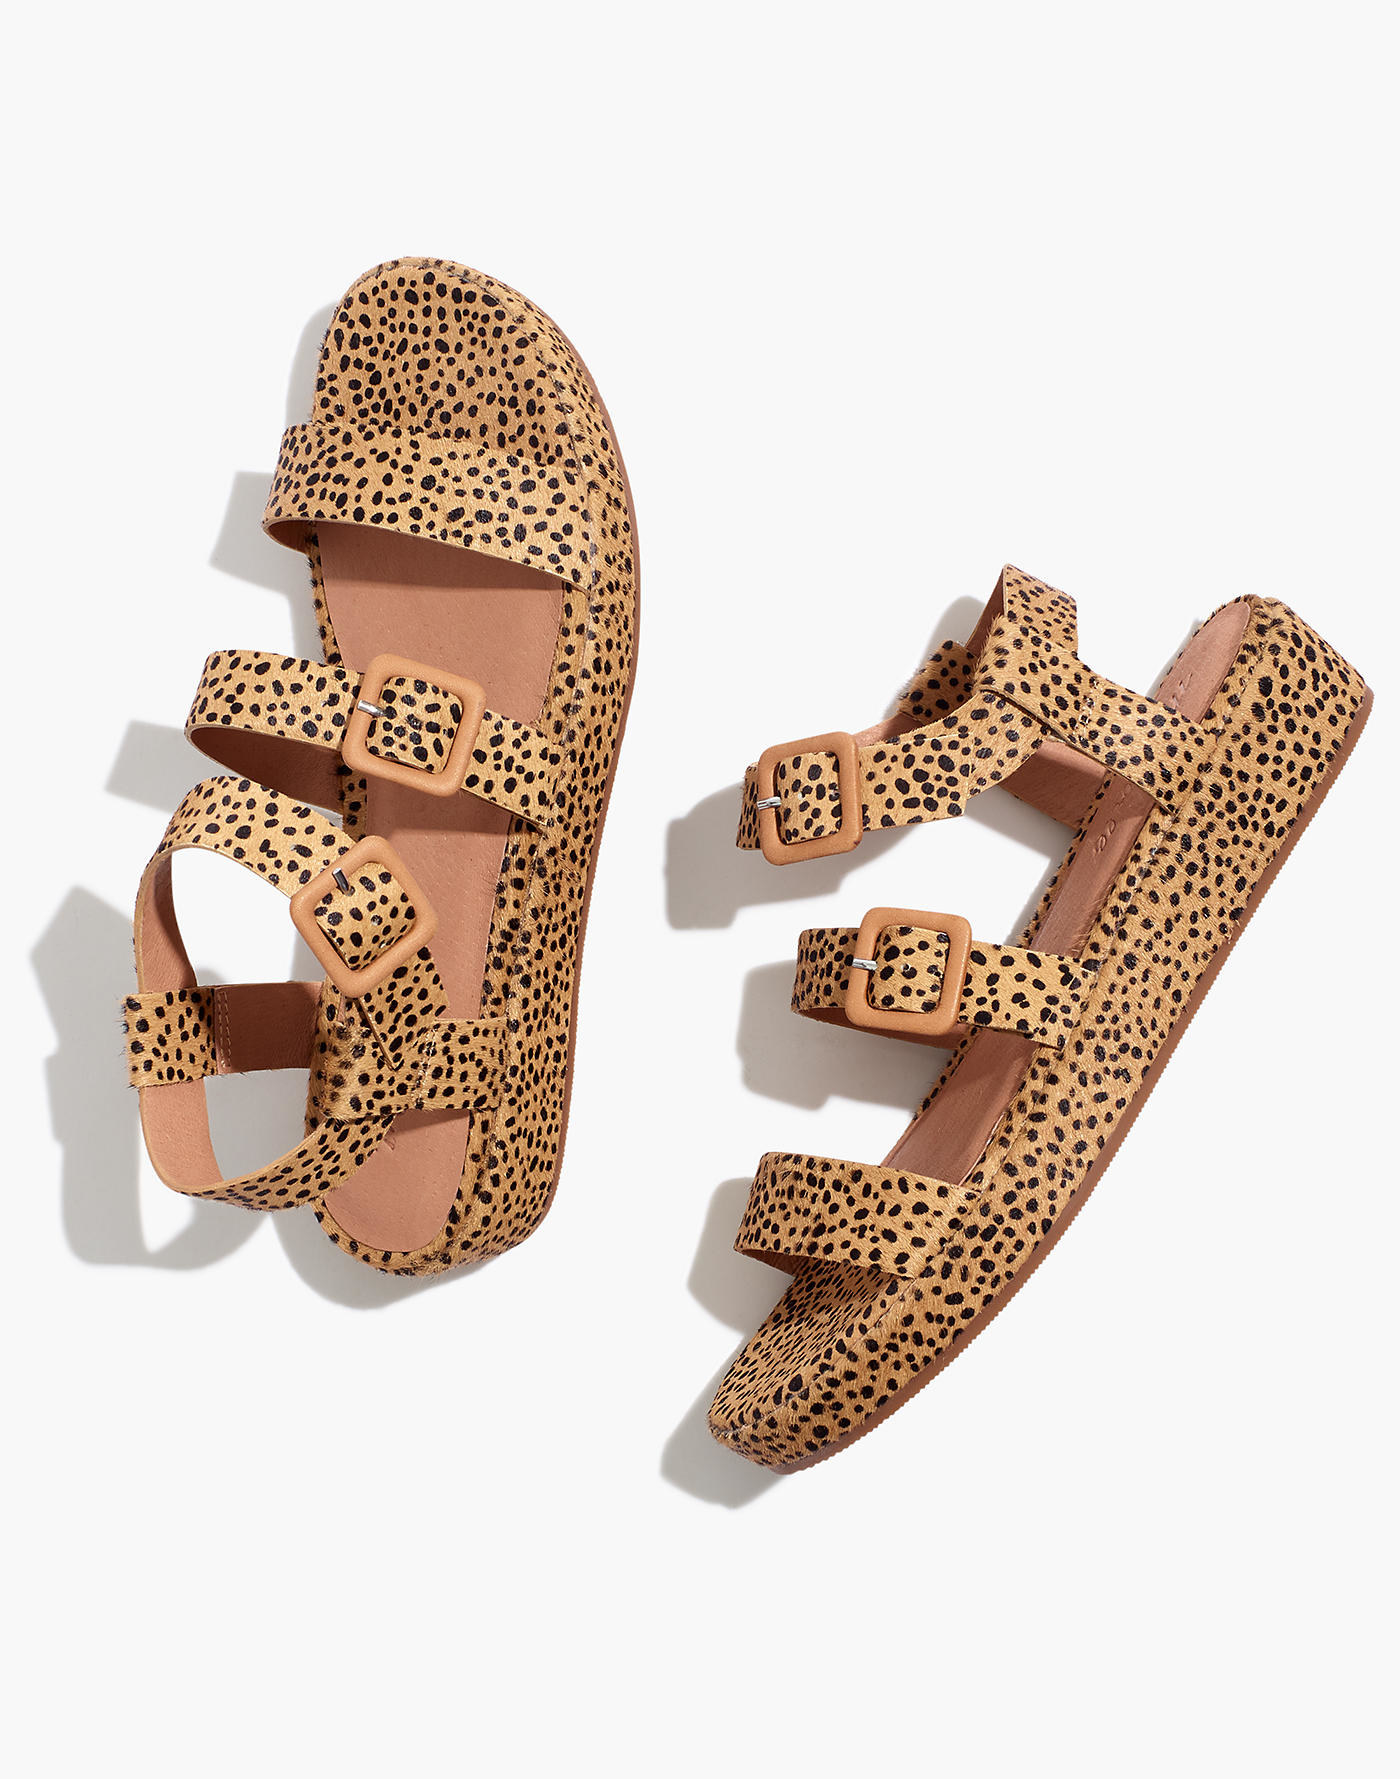 platform sandals with buckles and horizontal straps and a spotted calf hair design